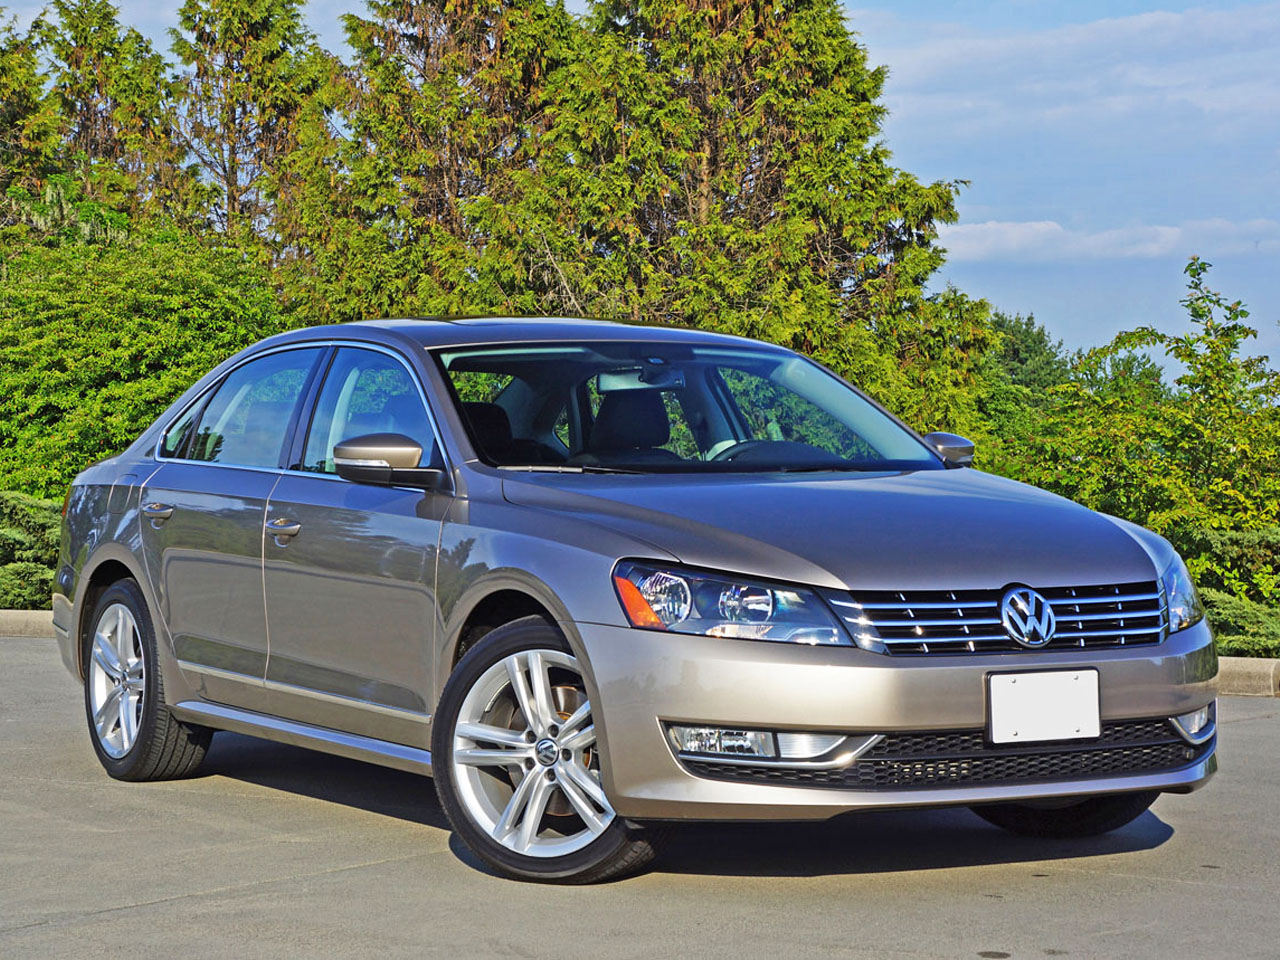 used passat sedan fwd certified pre inventory owned tdi comfortline volkswagen